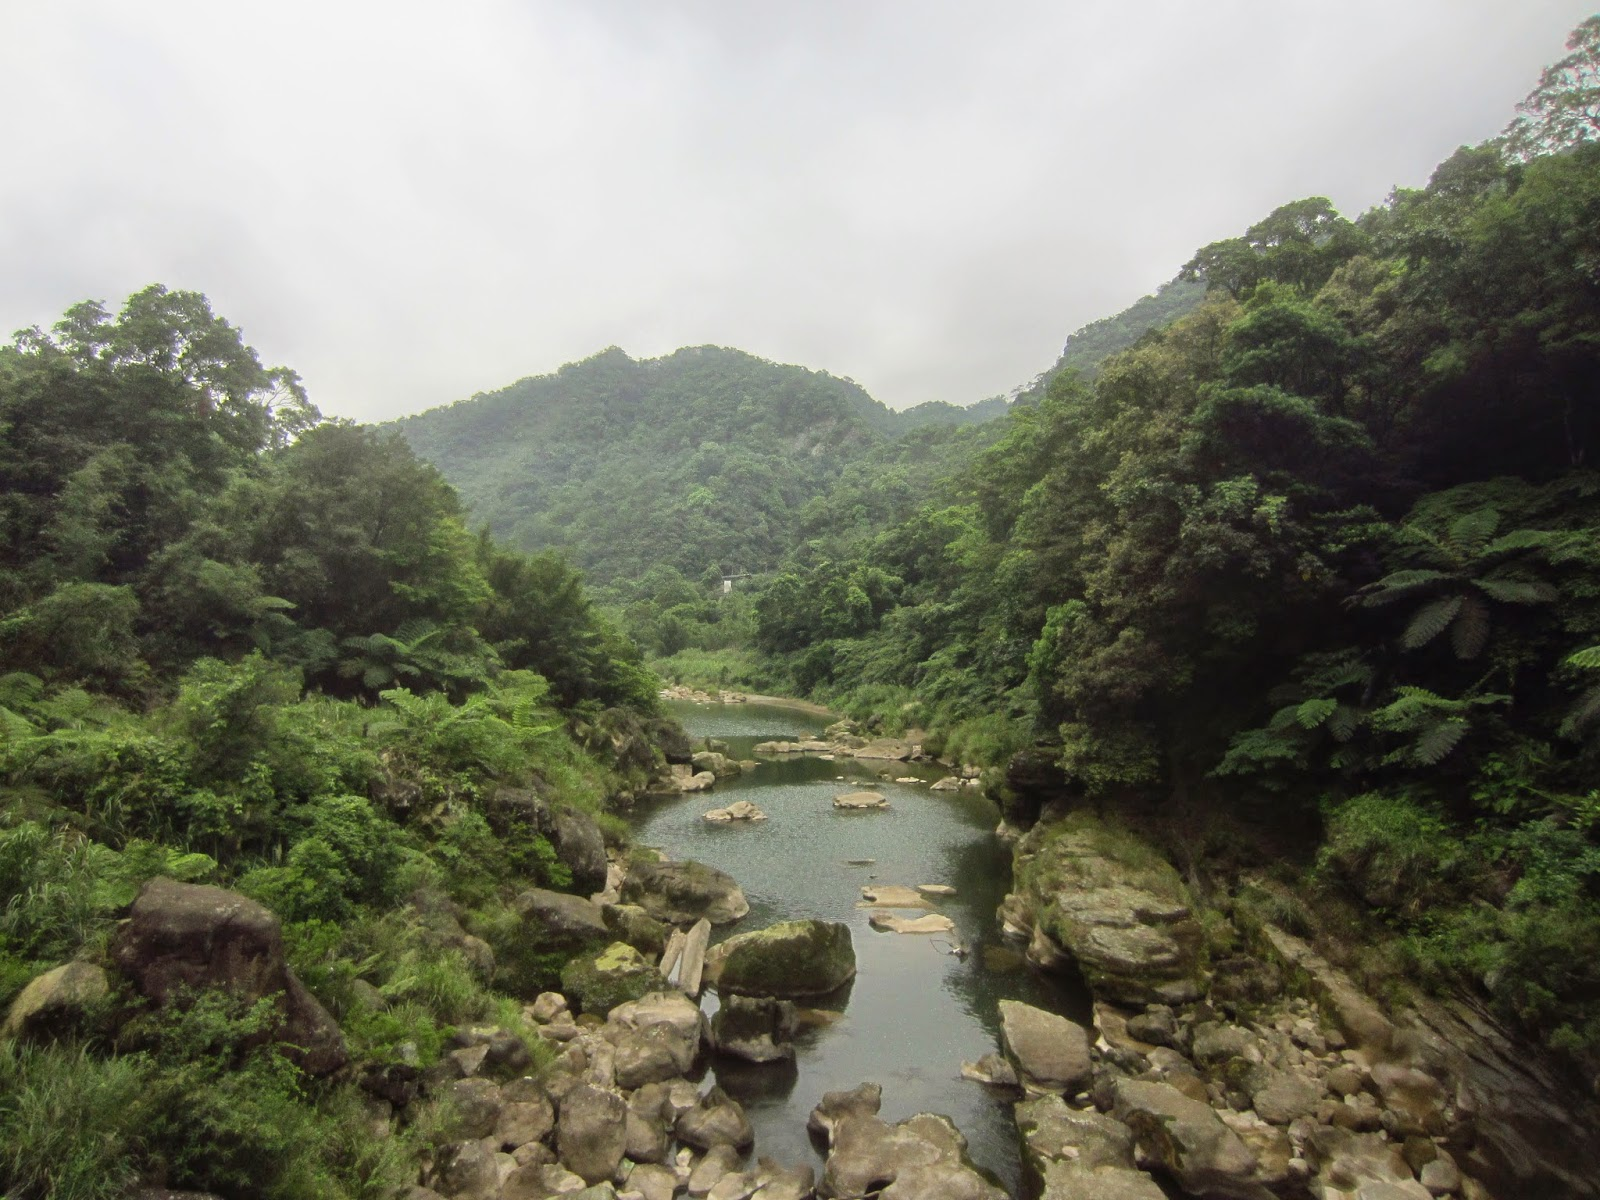 A part of the main river at Sandiaoling, Taiwan.